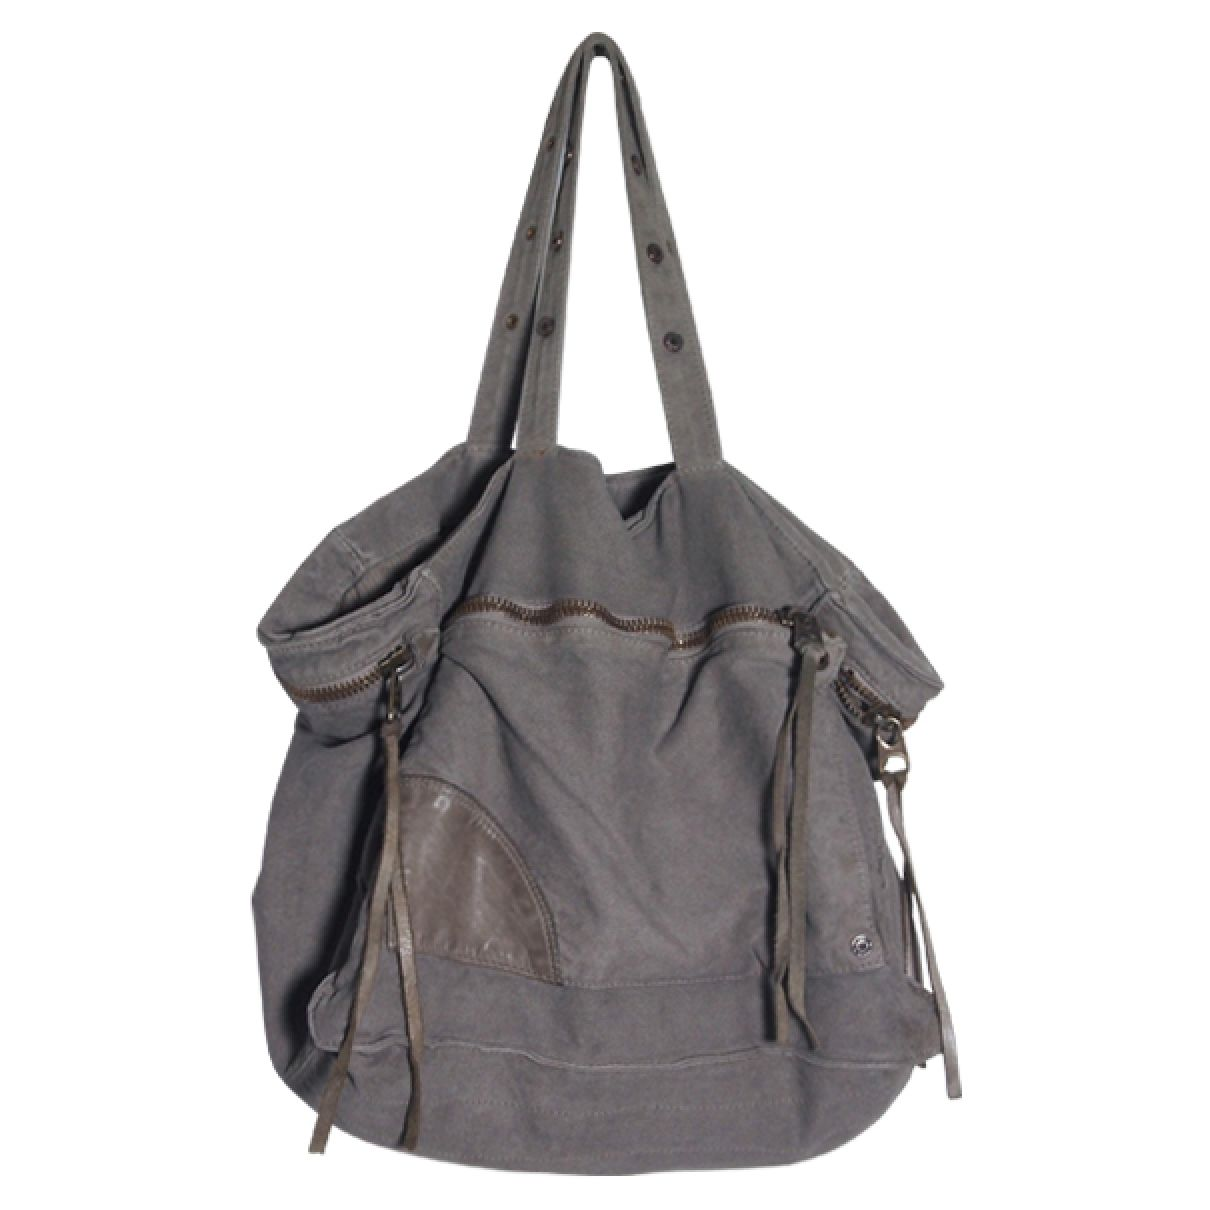 FOR SALE: Tote bag ZADIG & VOLTAIRE   leather & cotton, grey